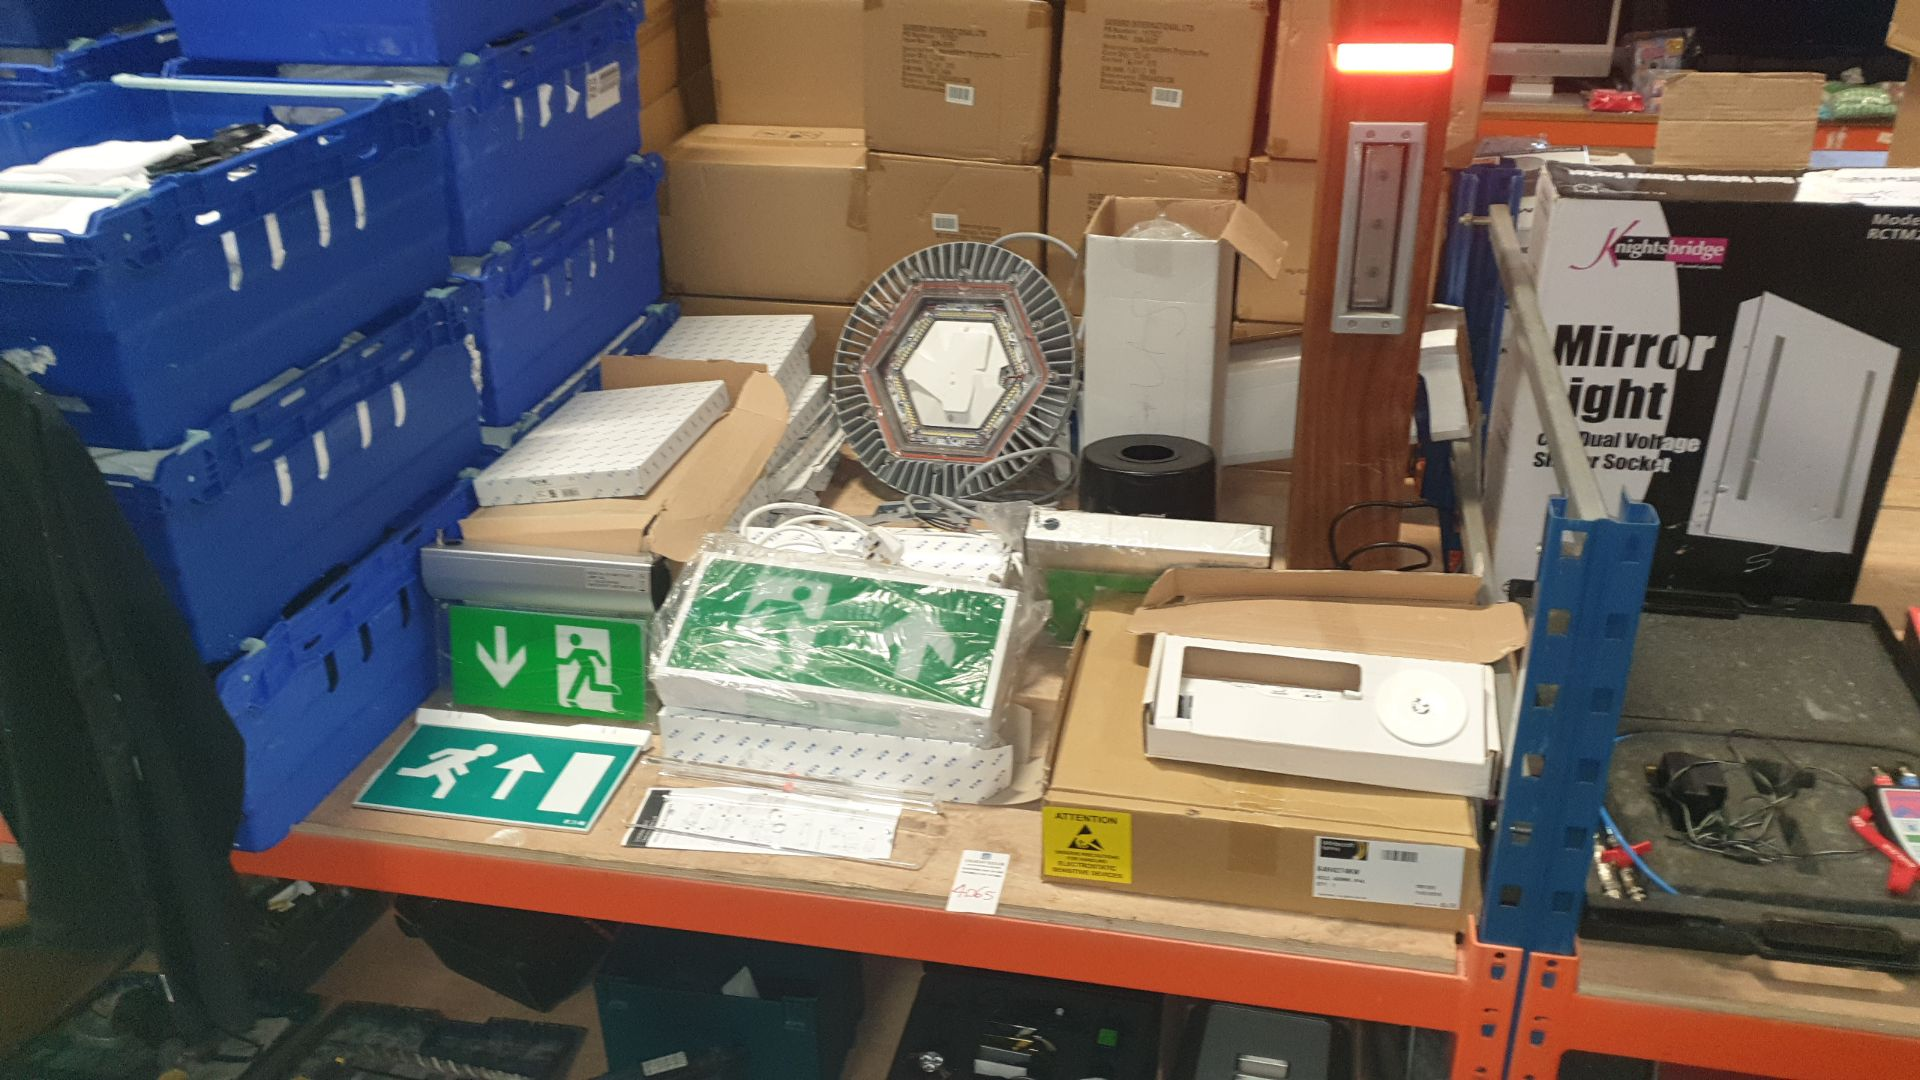 APPROX 40 + PIECE MIXED LOT CONTAINING A LARGE QUANTITY OF EATON FIRE EXIT SIGNS, WHITECROFT FIRE